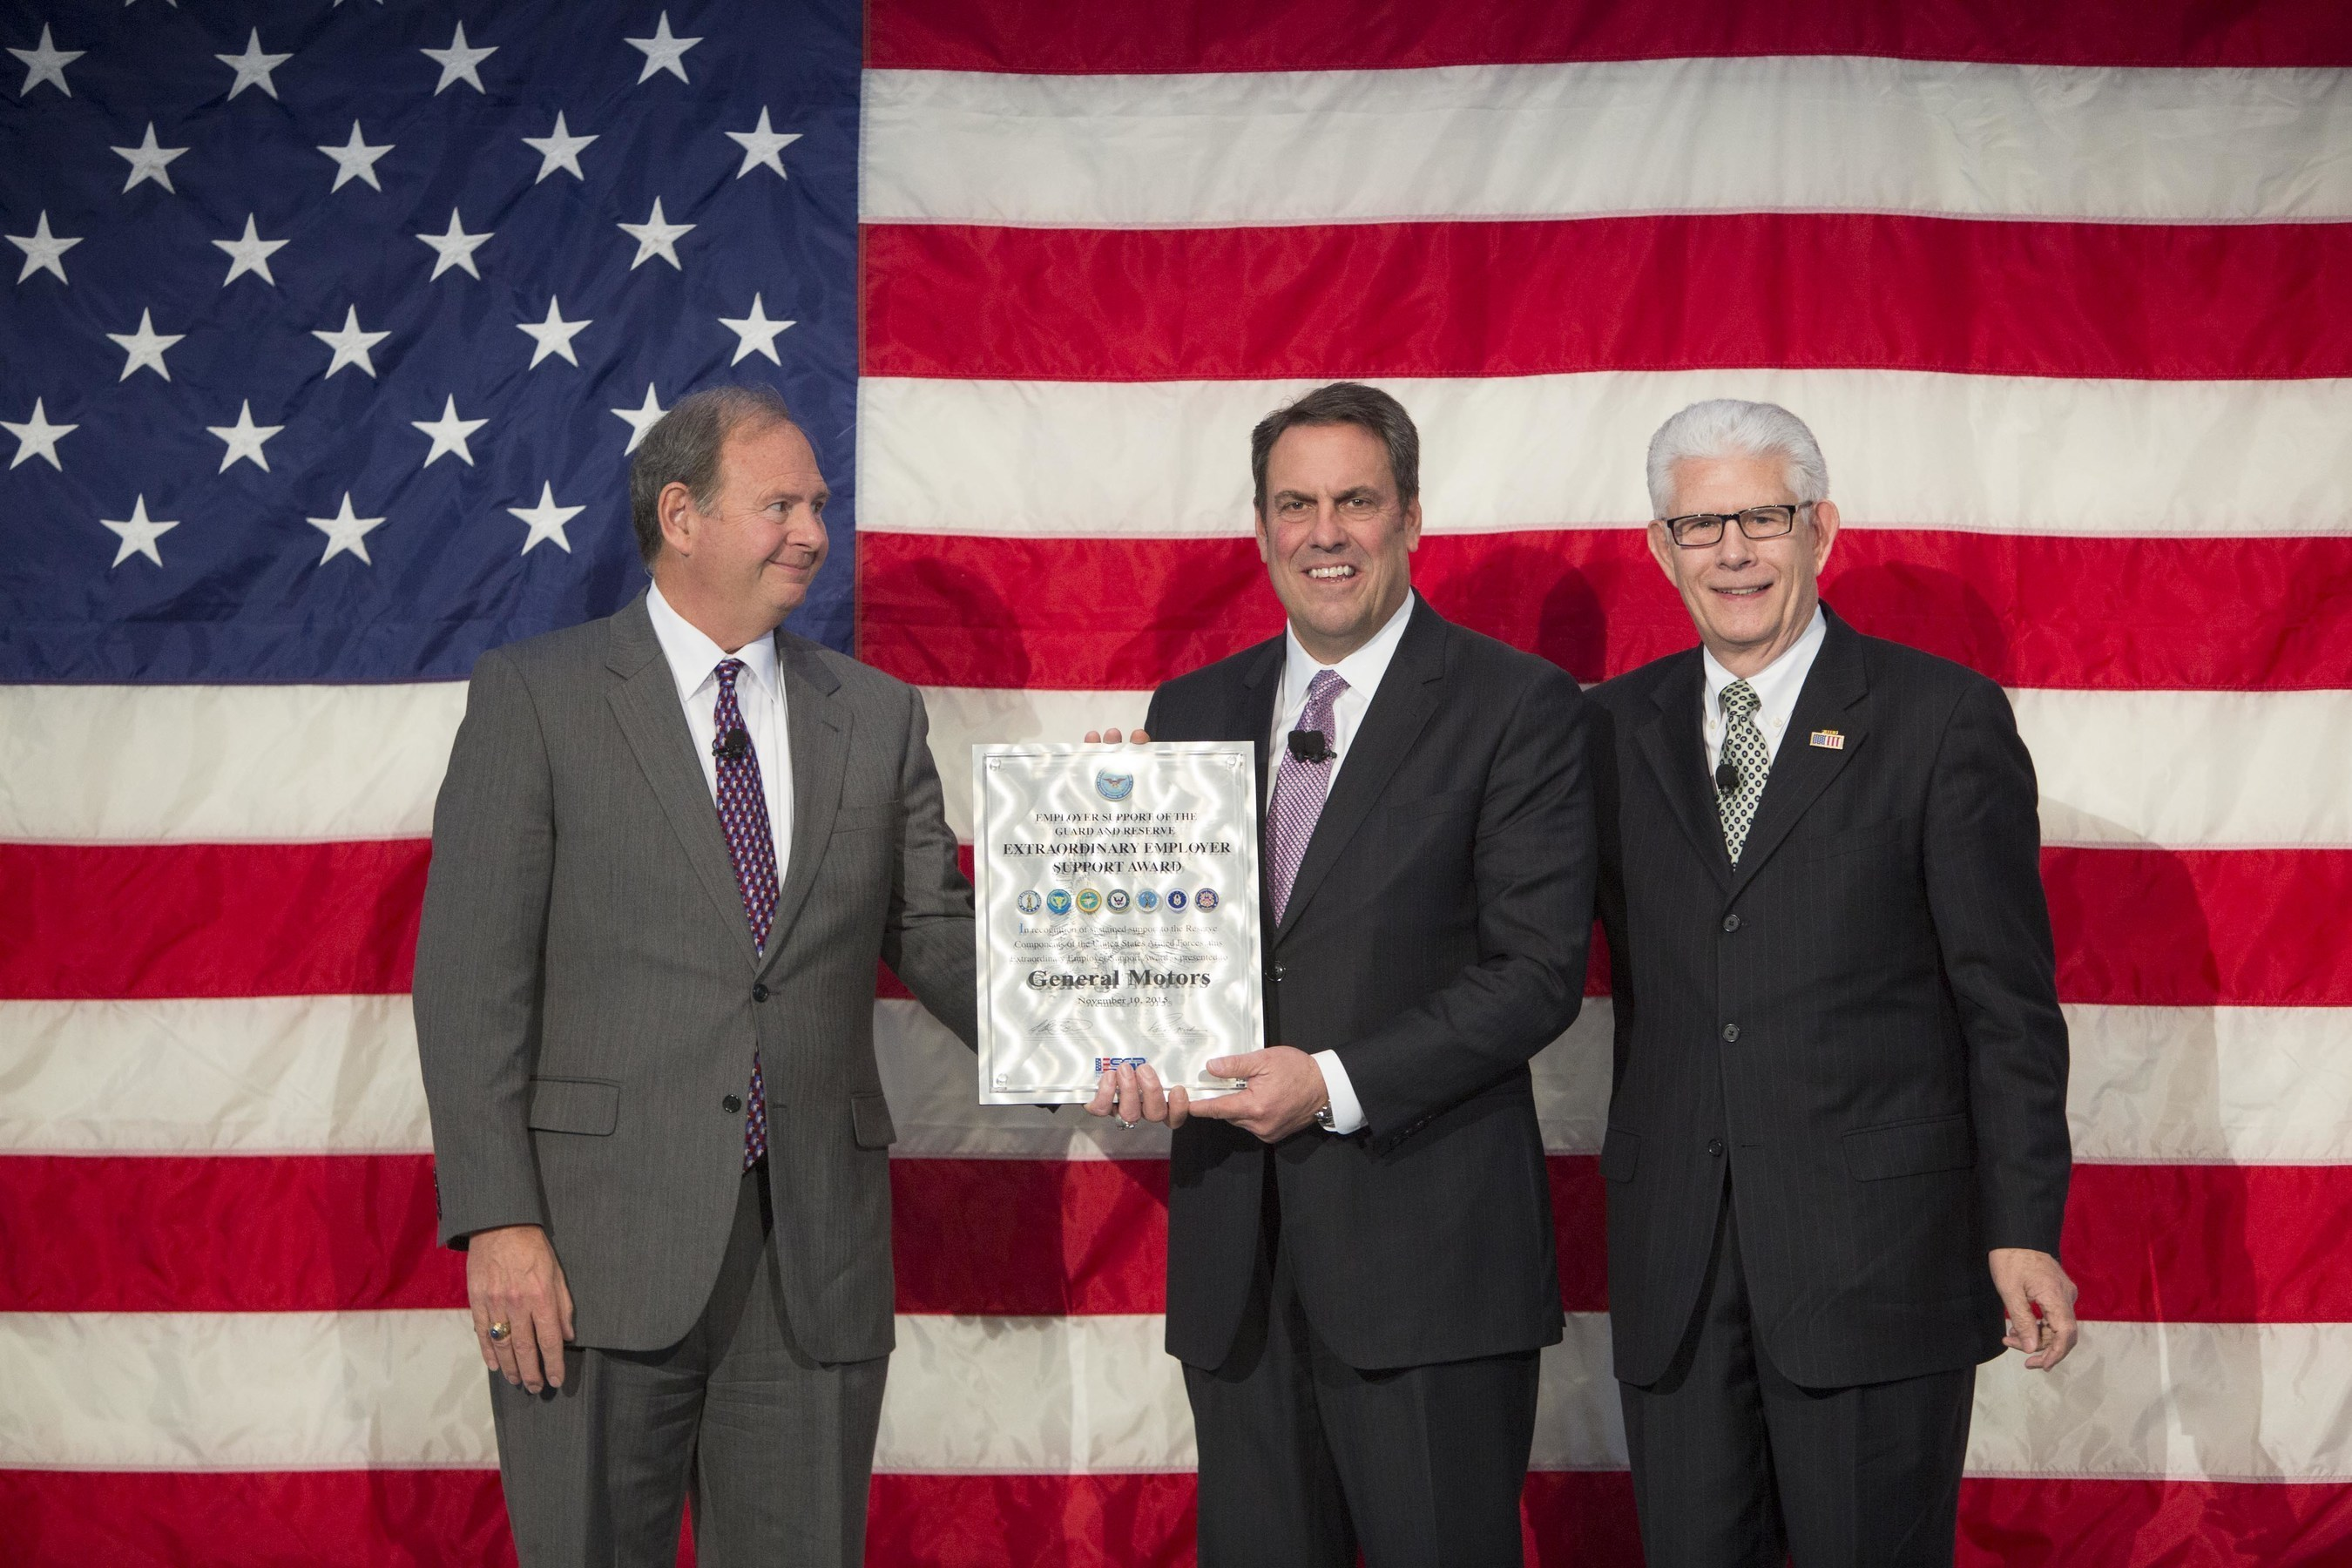 General Motors Executive Vice President Global Product Development, Purchasing and Supply Chain Mark Reuss (center) accepts the Employer Support of the Guard and Reserve Extraordinary Employer Support Award on behalf of GM during a Veterans Day celebration Tuesday, November 10, 2015 in Warren, Michigan. General Motors reaffirmed its commitment to employees serving in the National Guard and Reserve during the event. The award recognizes sustained commitment of companies for employees in the National Guard...